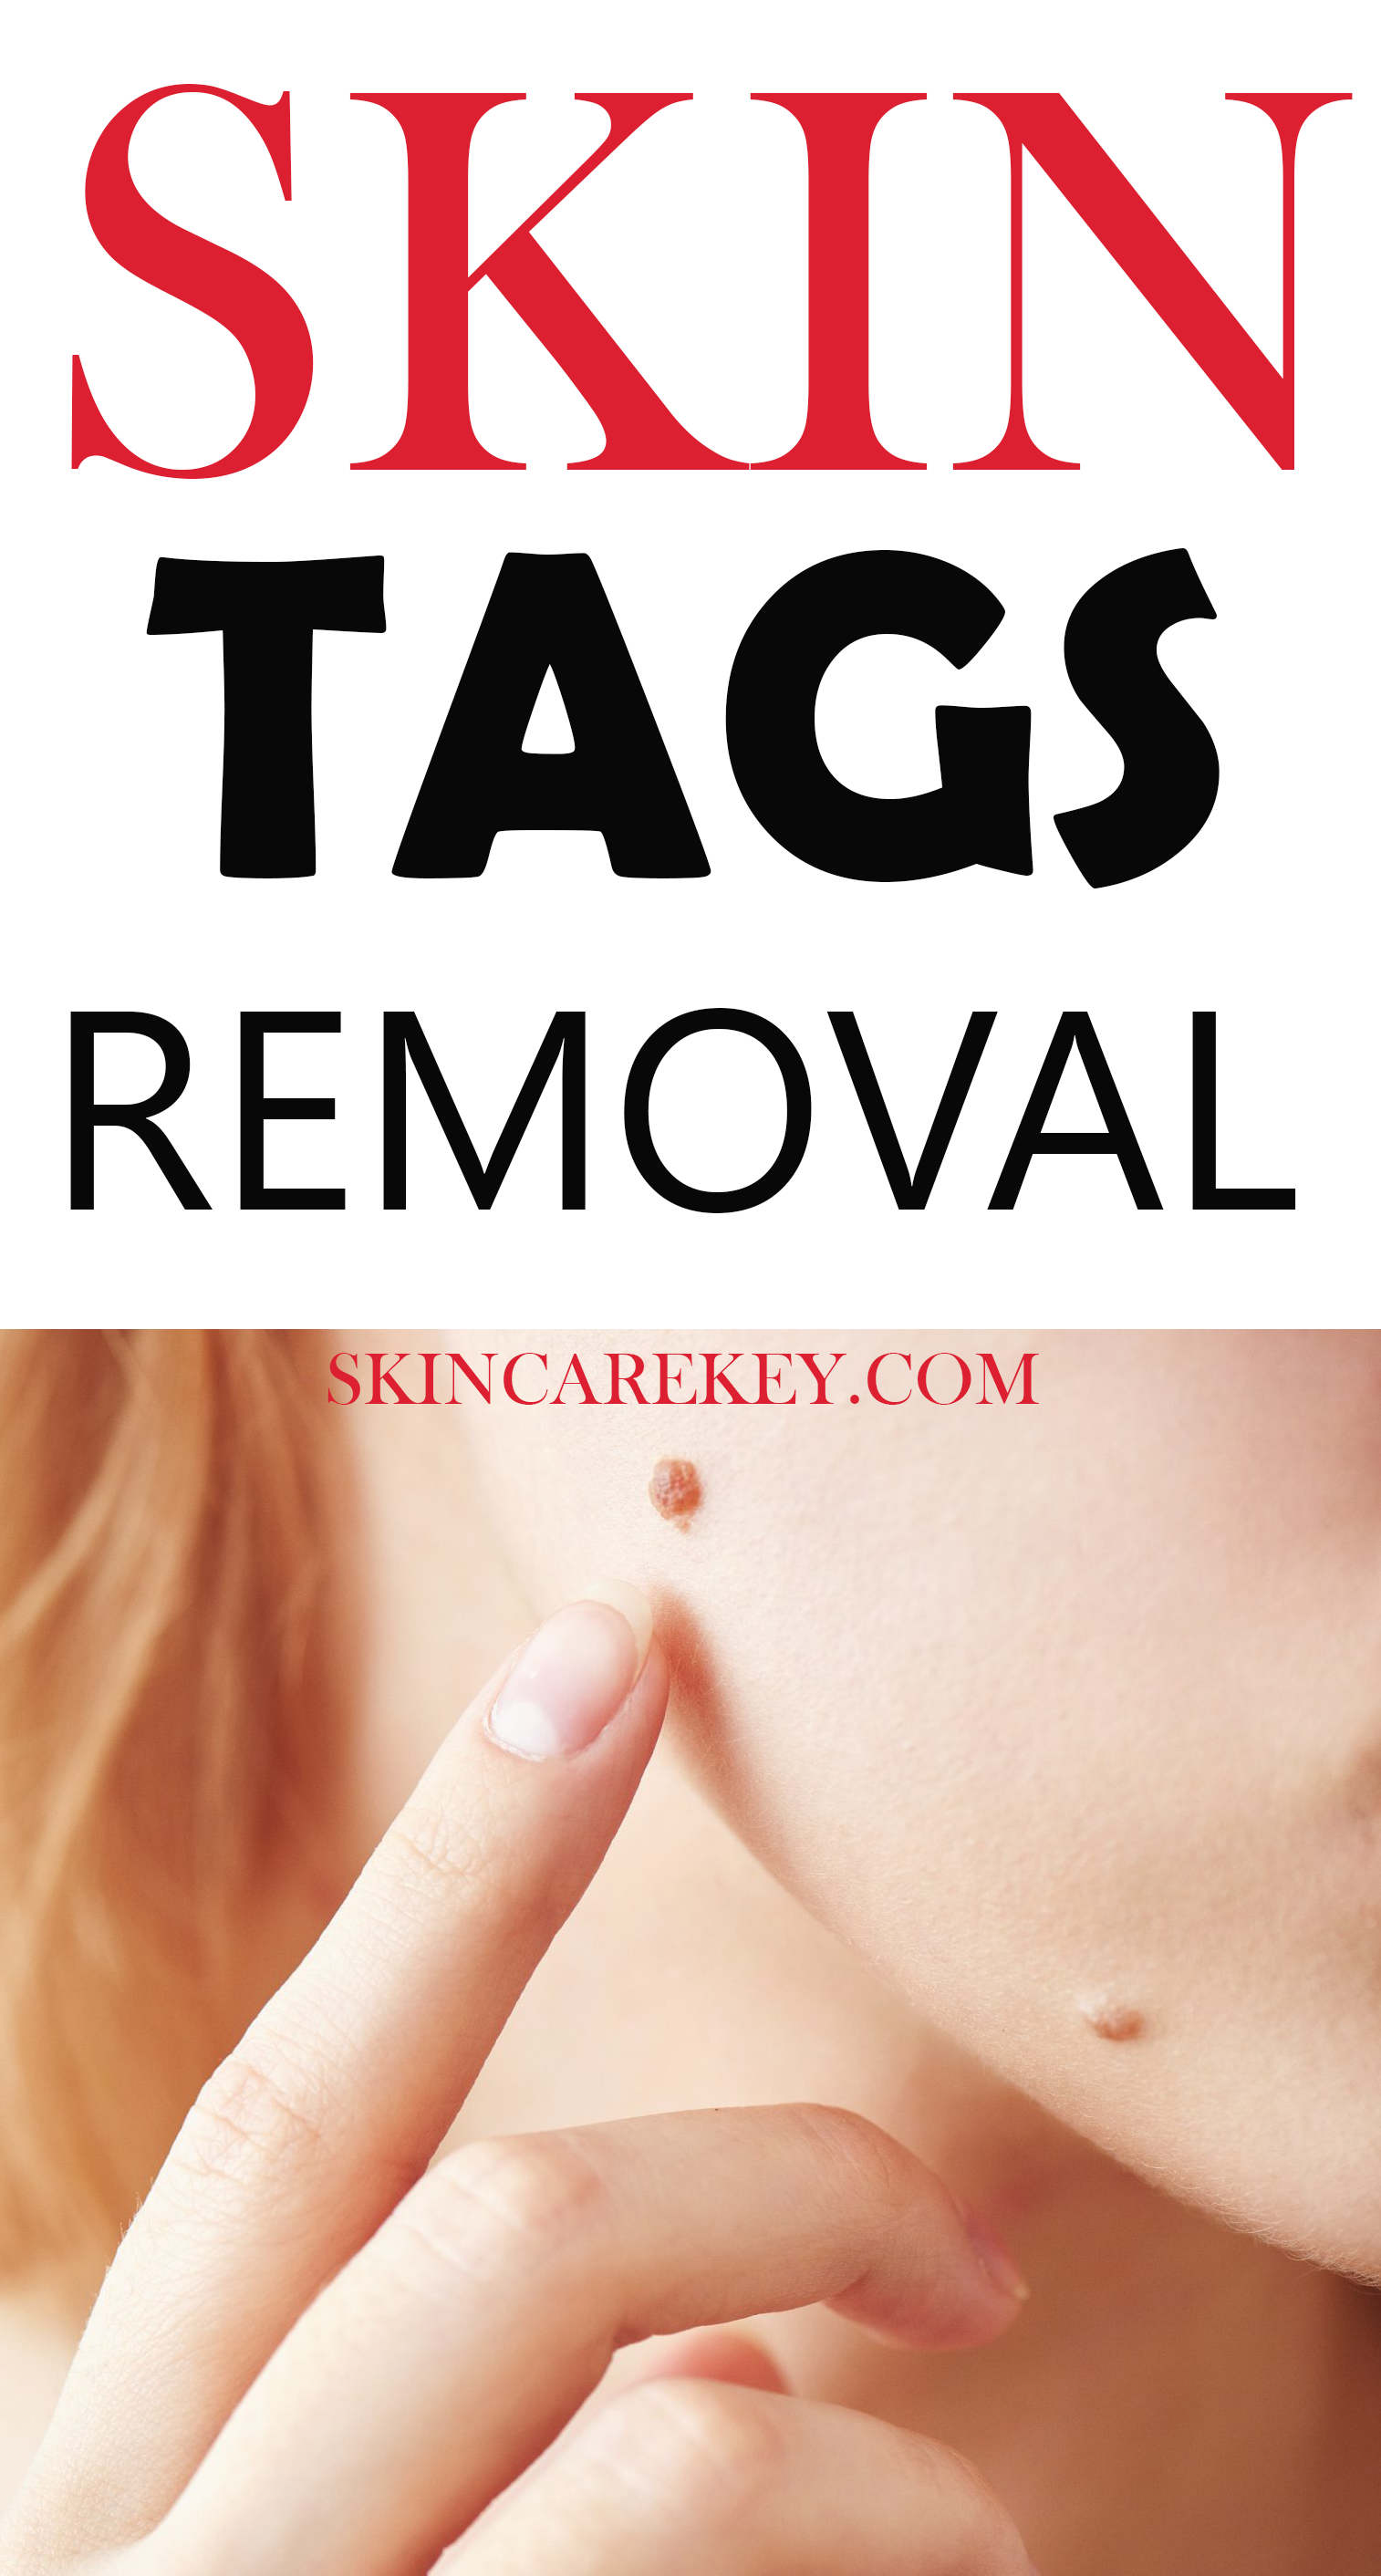 Here's an topical remedy that can get rid of these